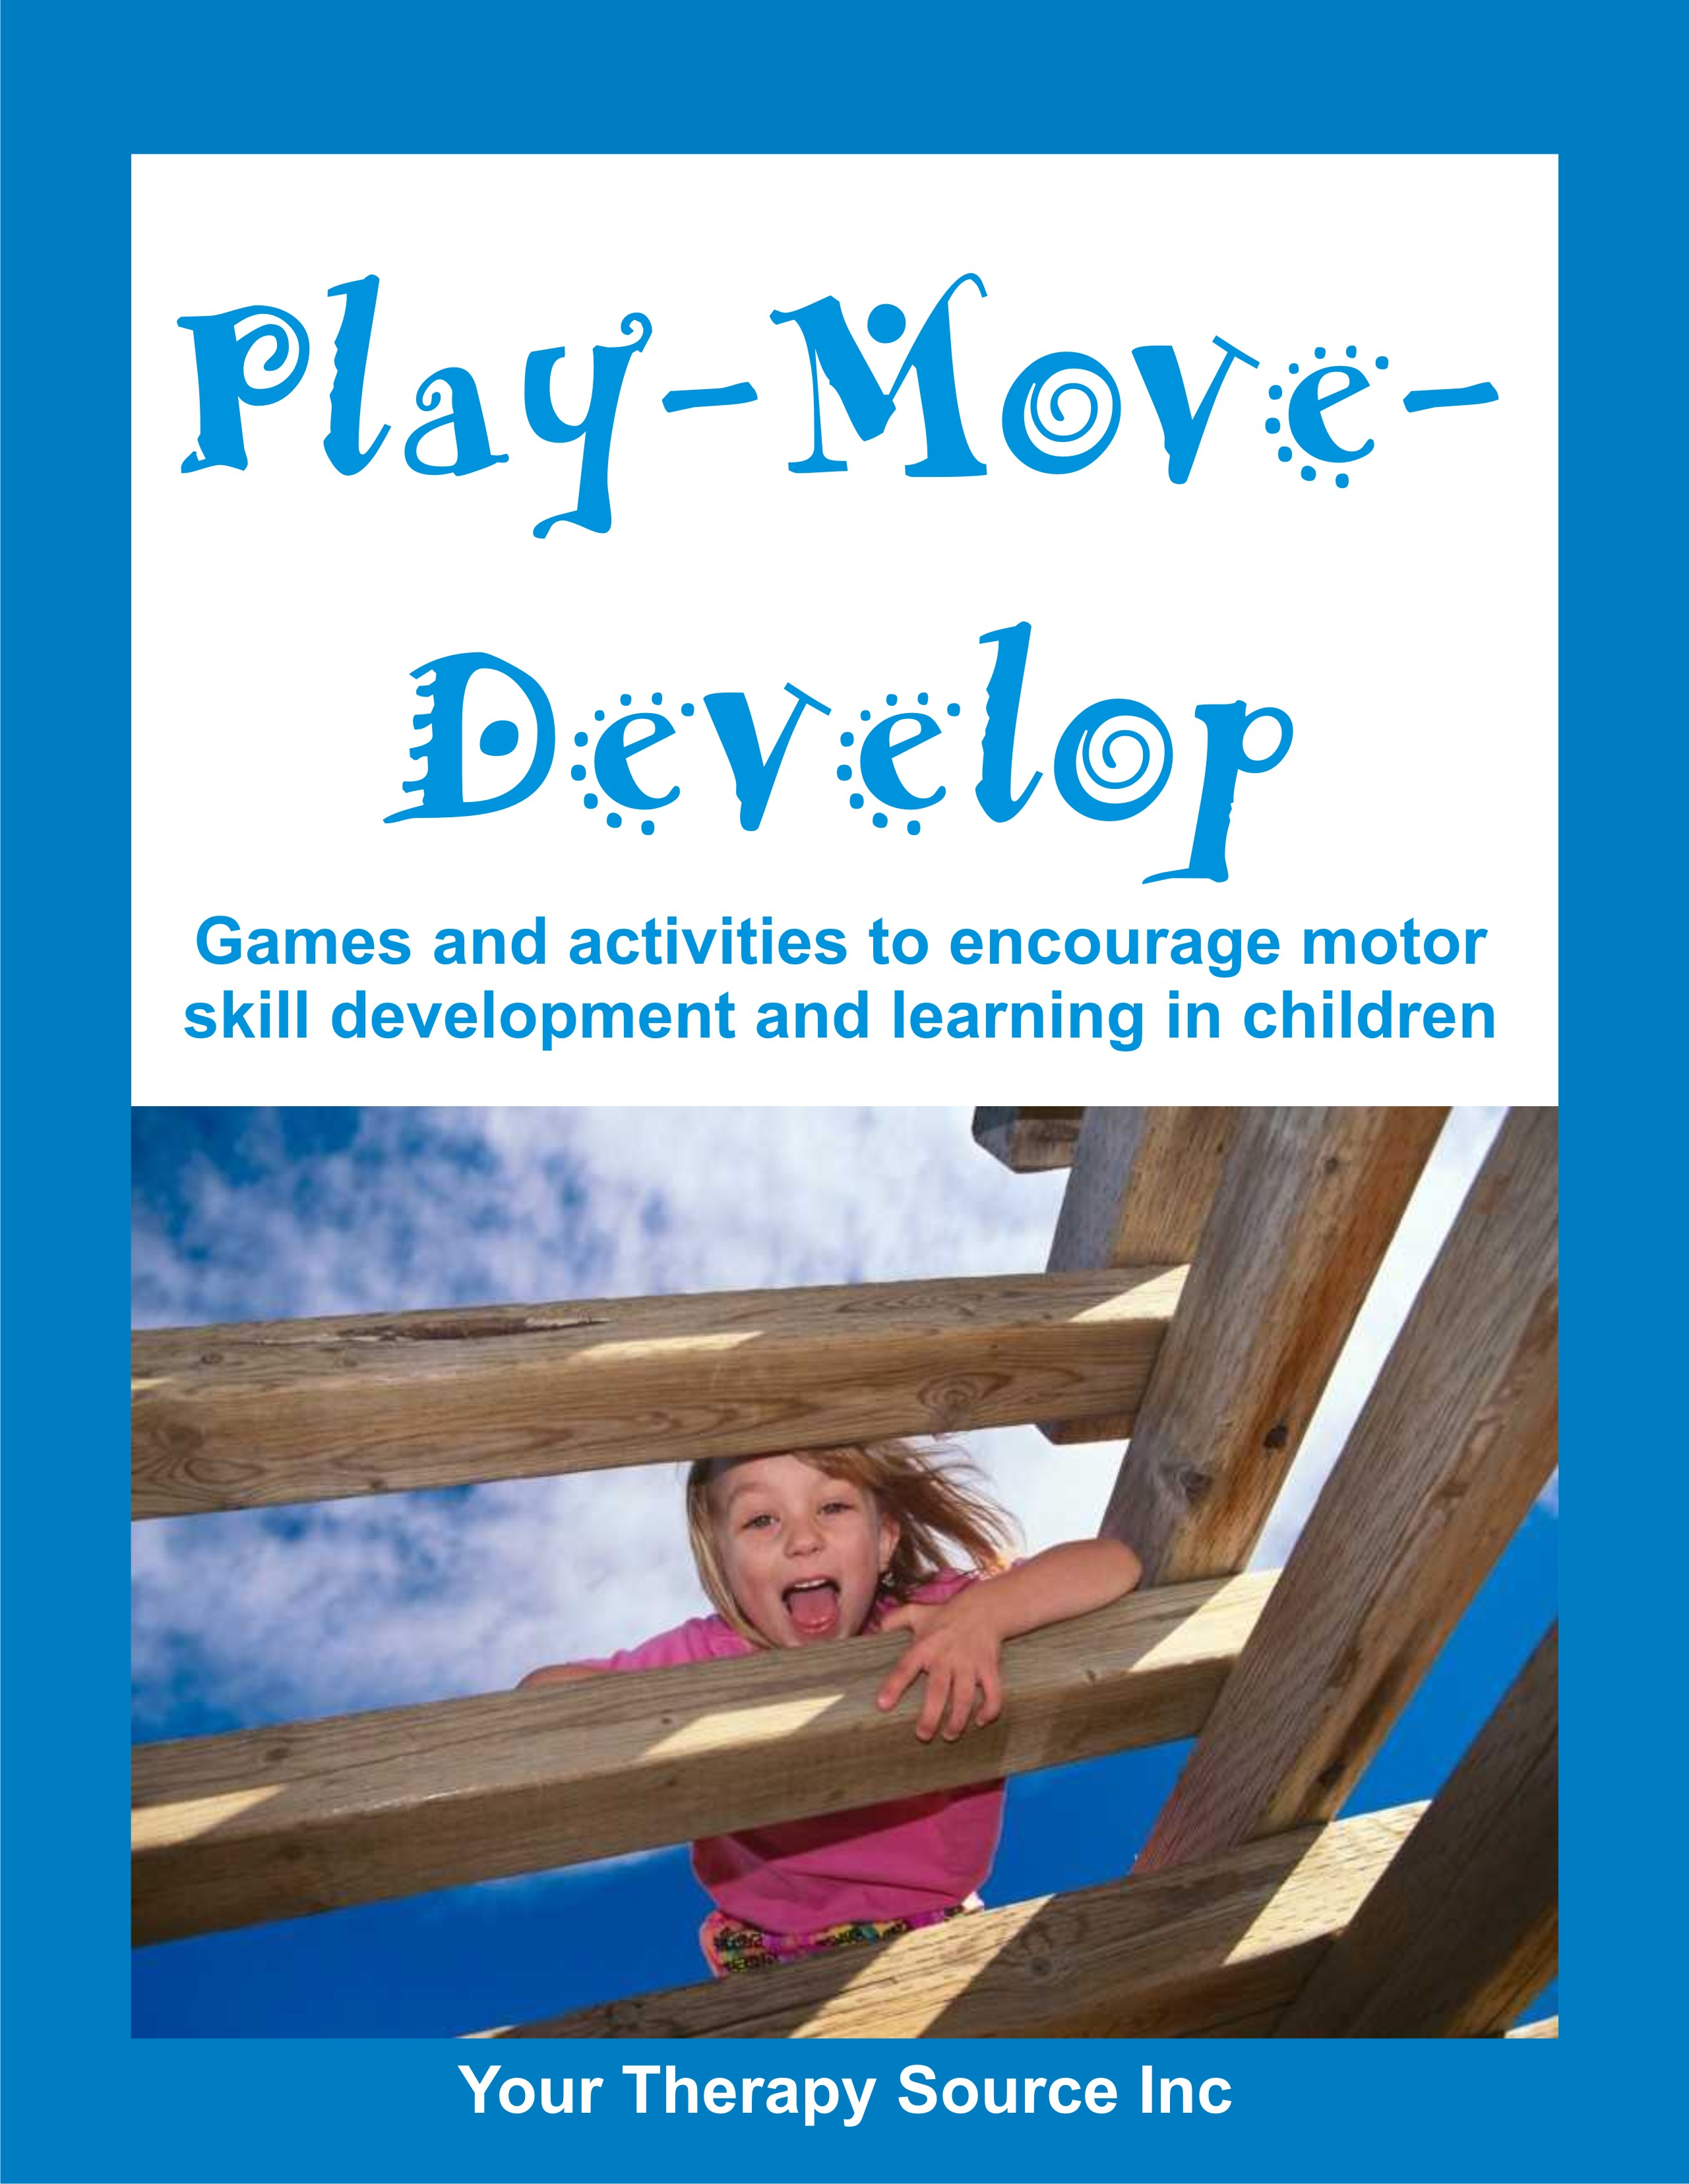 Play Move Develop from https://yourtherapysource.com/playmove.html